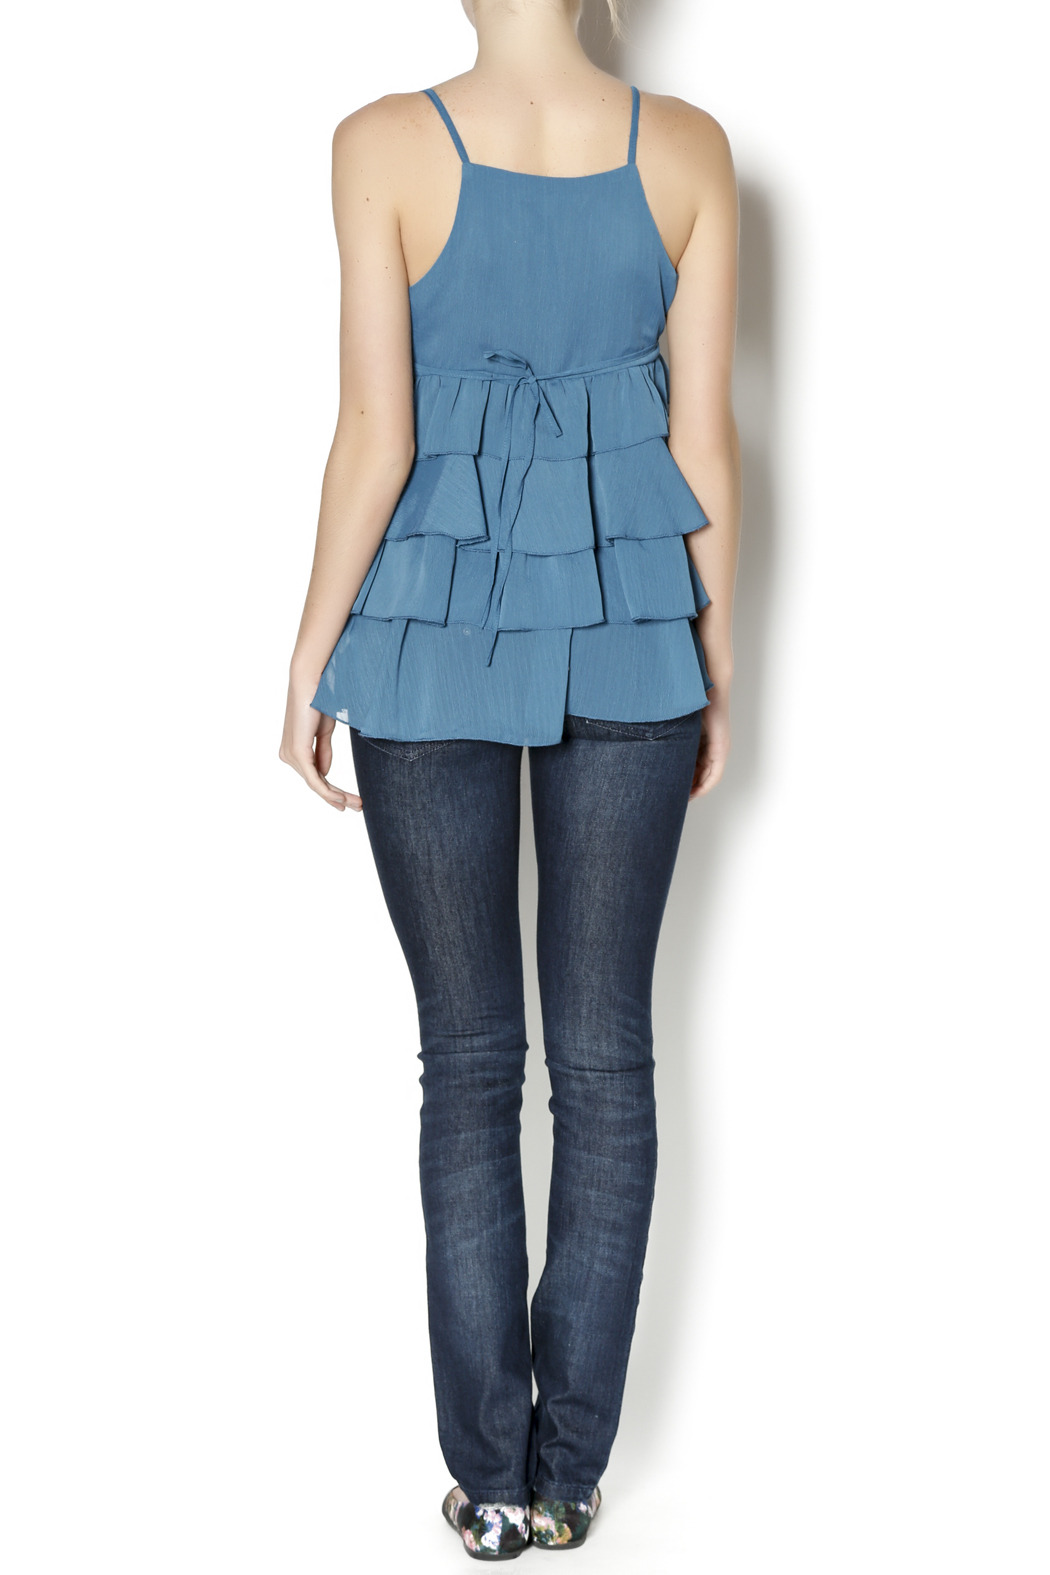 Elise Pearl Ruffle Top - Side Cropped Image